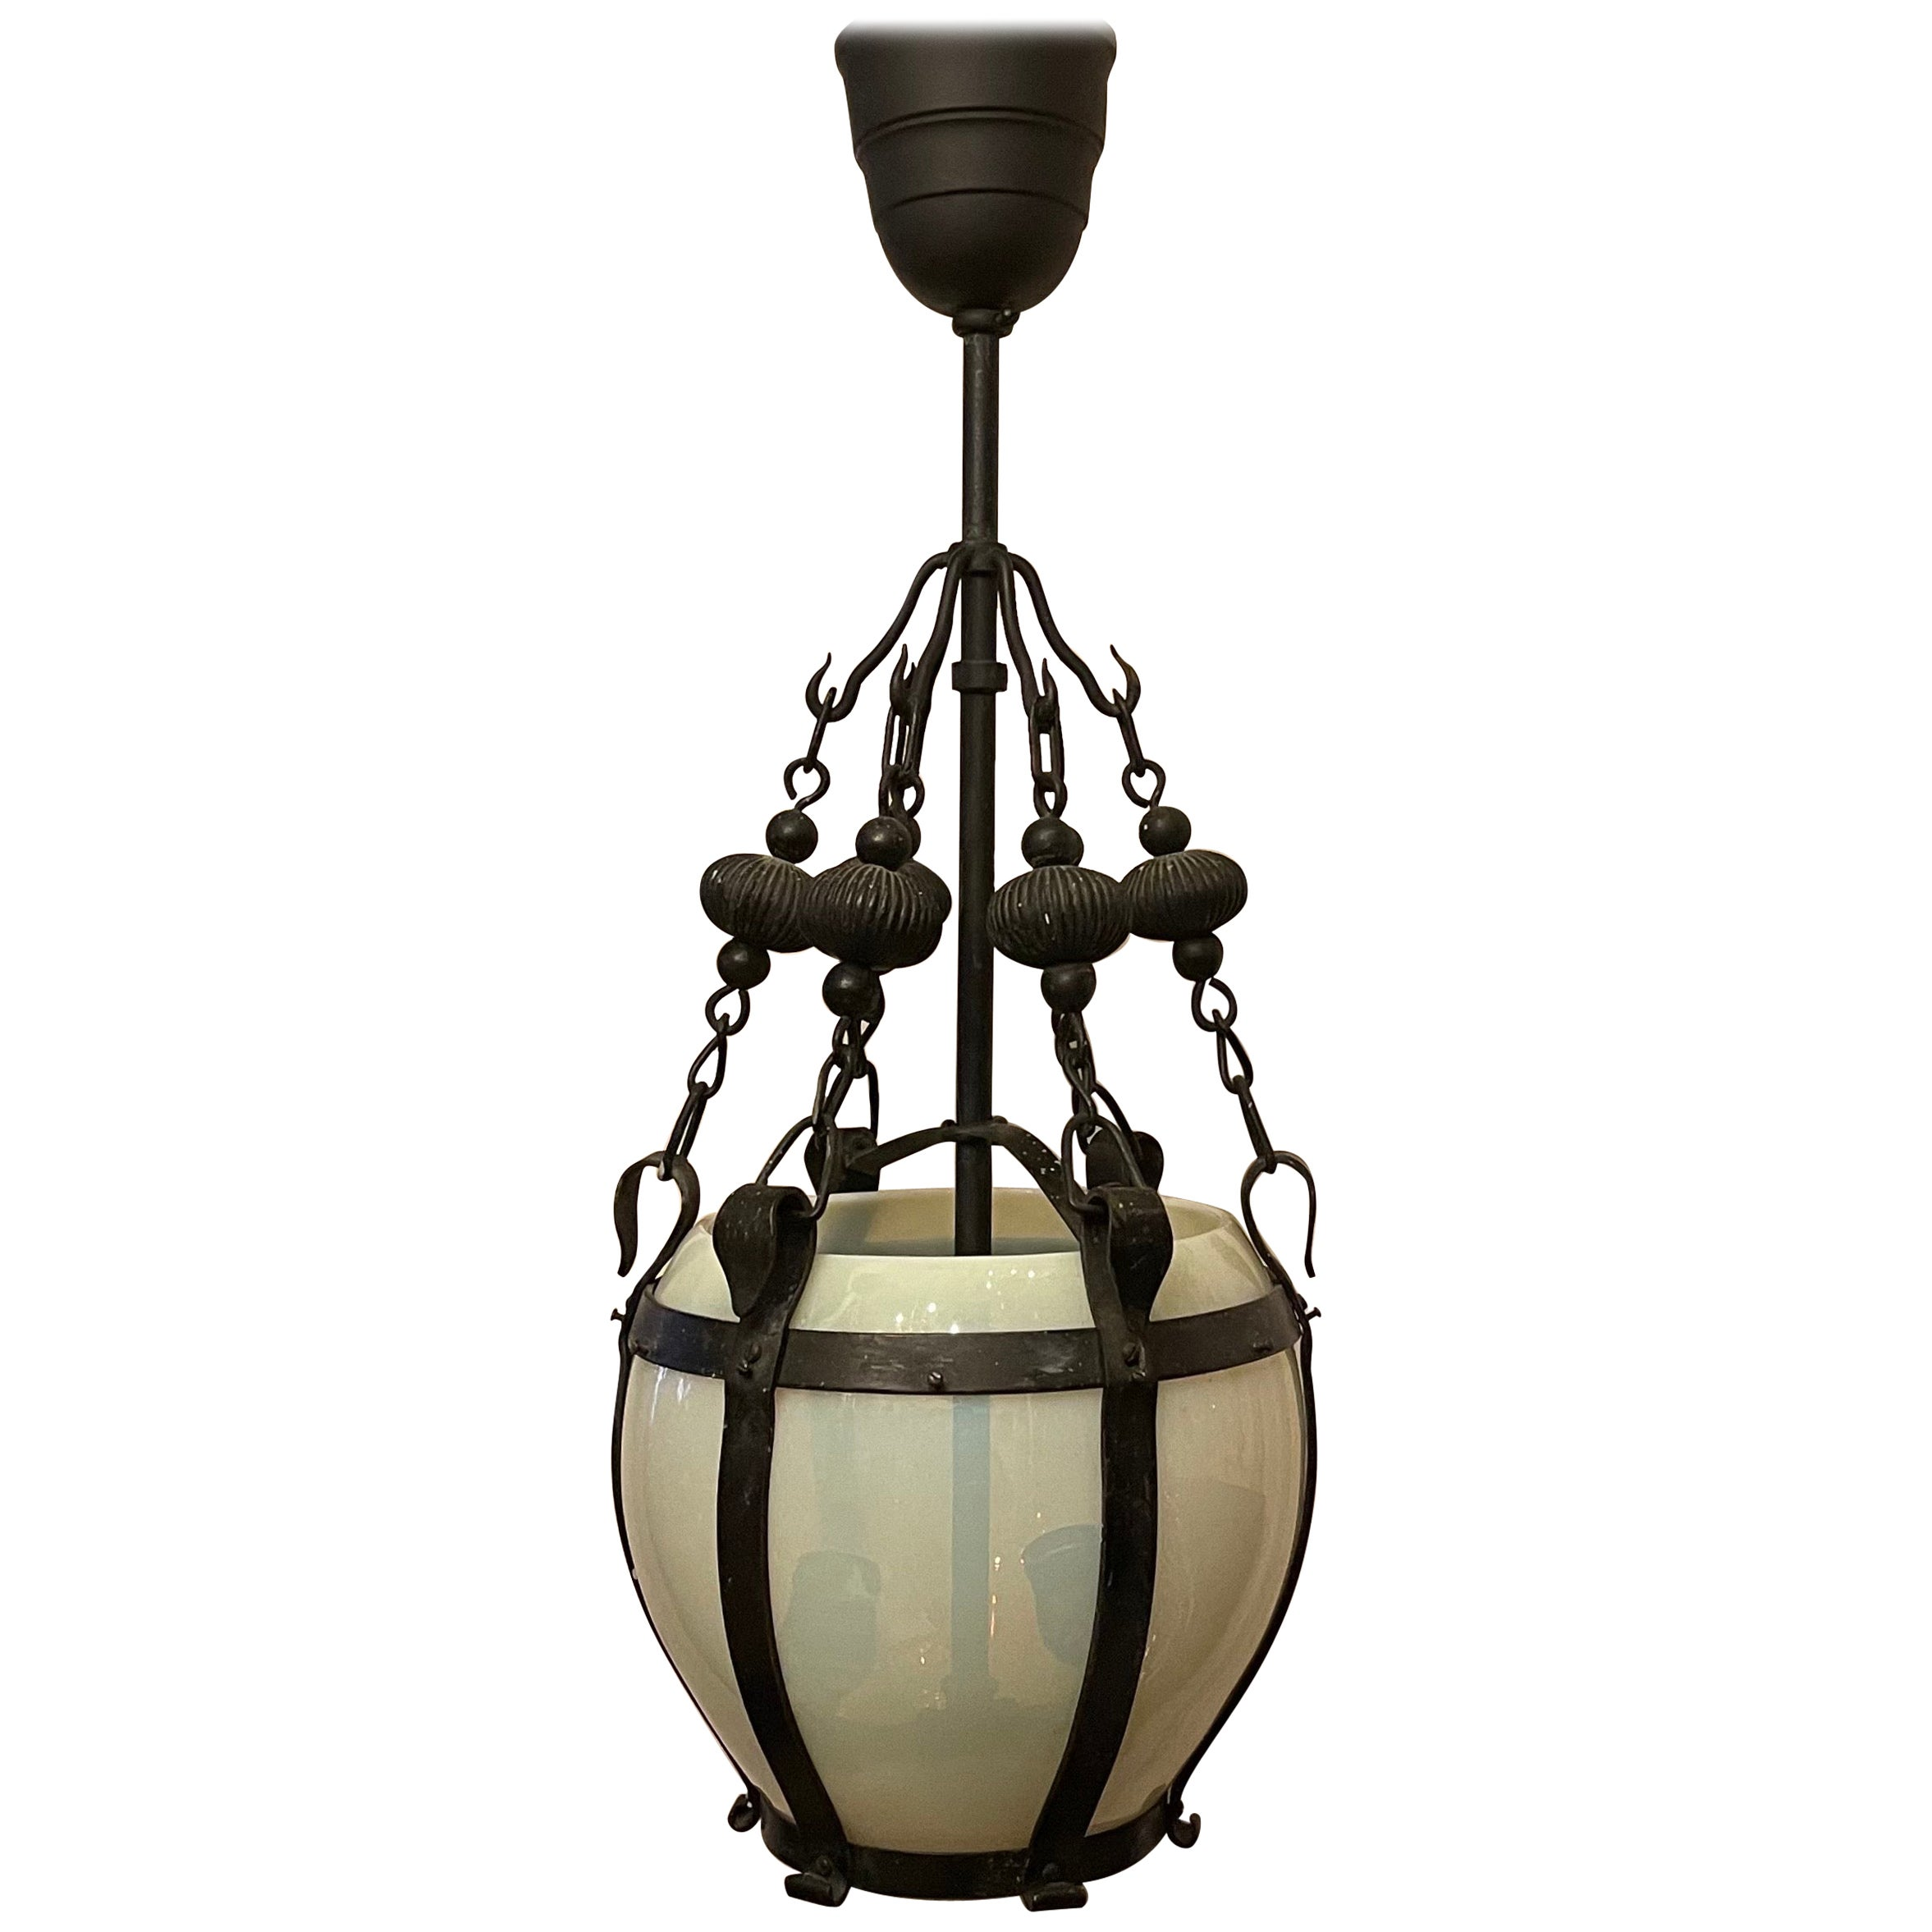 Wonderful French Art Deco Opaline Glass and Wrought Iron Lantern Pendent Fixture